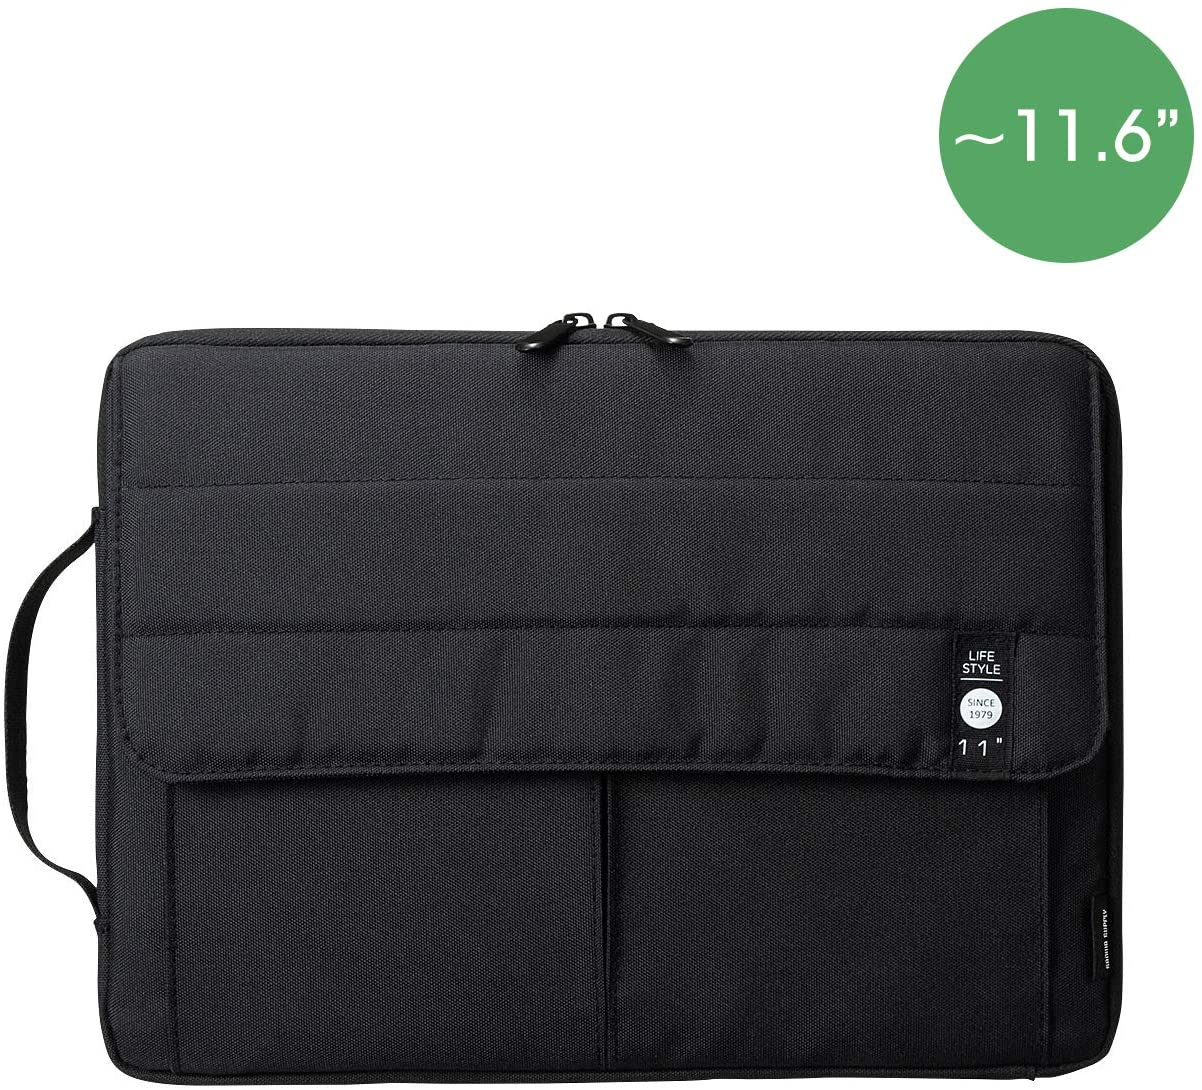 SANWA (Japan Brand) Laptop Computer Sleeve Case, Sleeve Bag Compatible with 11 inch MacBook Pro, MacBook Air, Pad,HP, Dell, Notebook Computer, Water Resistance Case Cover with Pocket, Blck